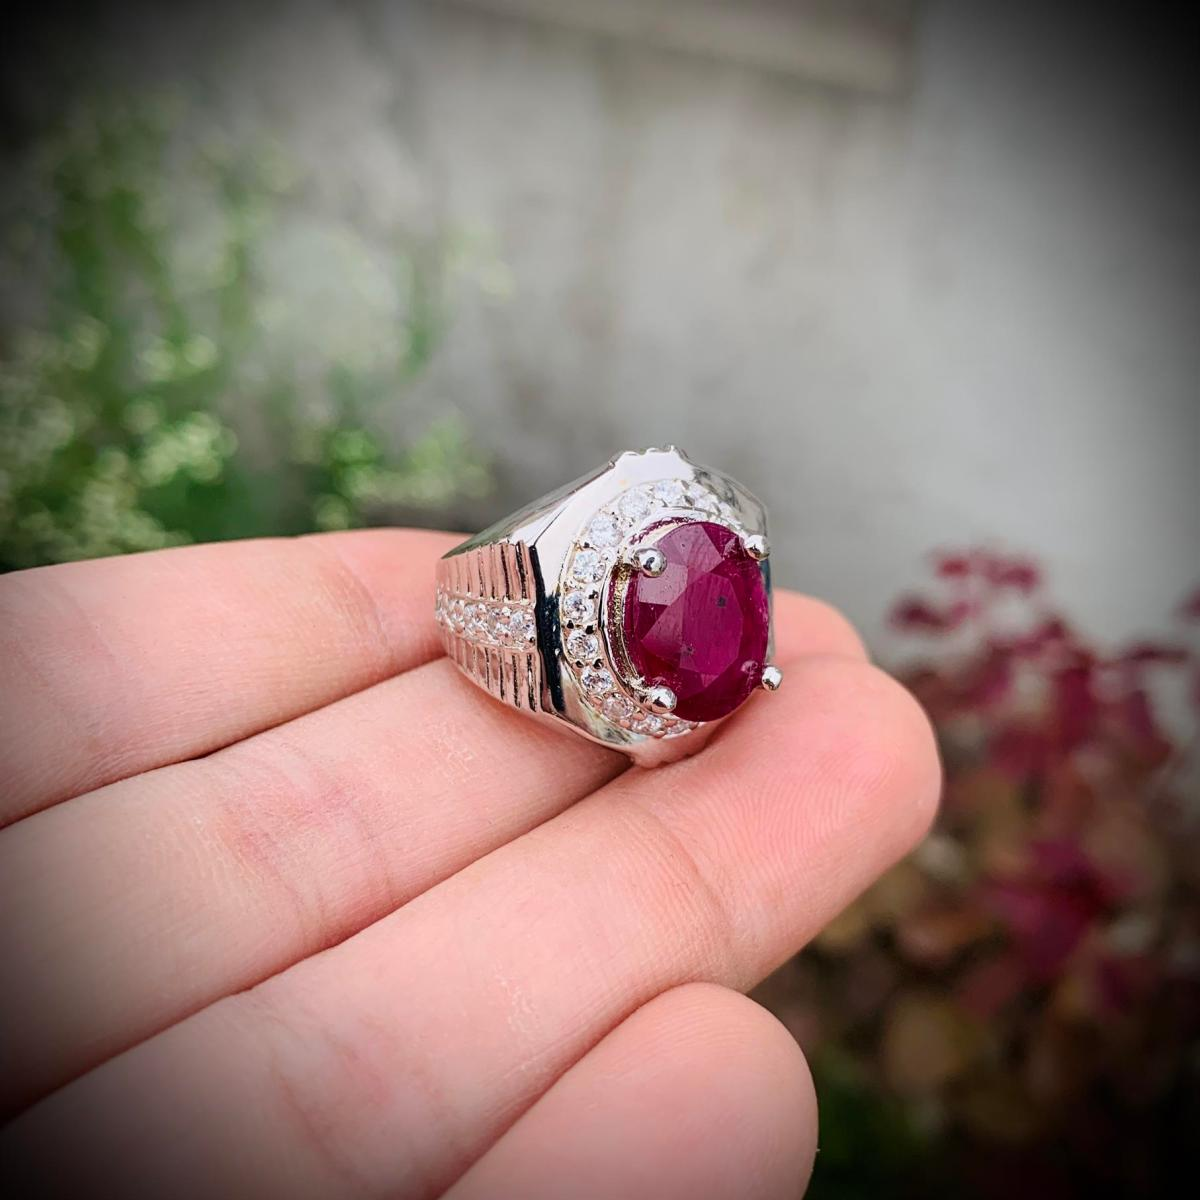 Natural Ruby Ring 407 3 natural gemstones pakistan + 925 silver jewelry online